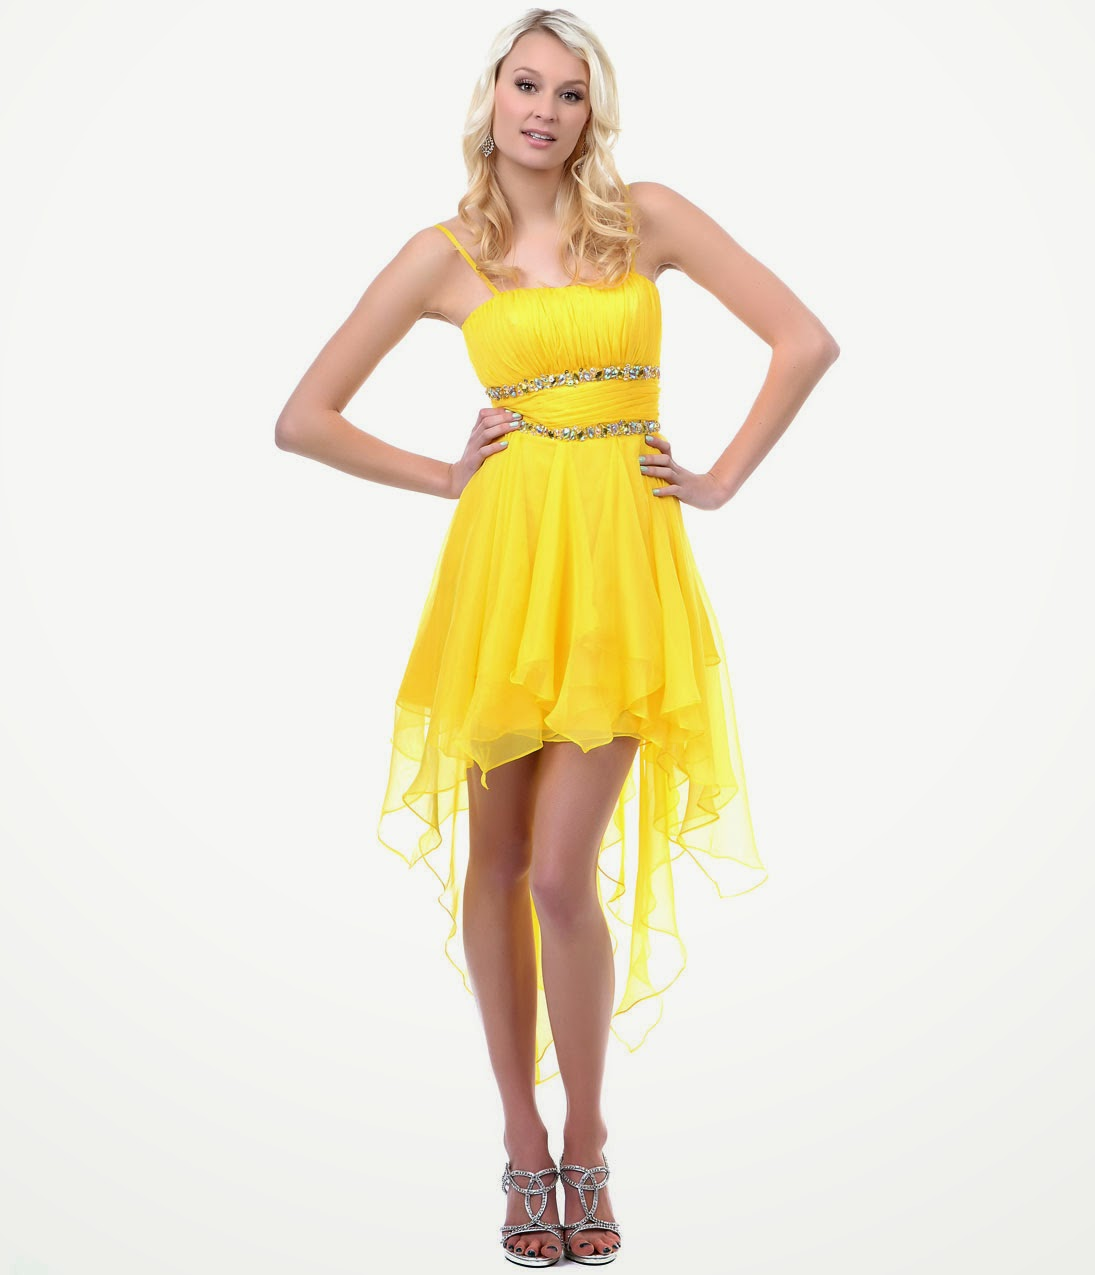 http://www.yopeey.com/yellow-shimmy-high-low-homecoming-dresses-high-low-dresses-tumblr/